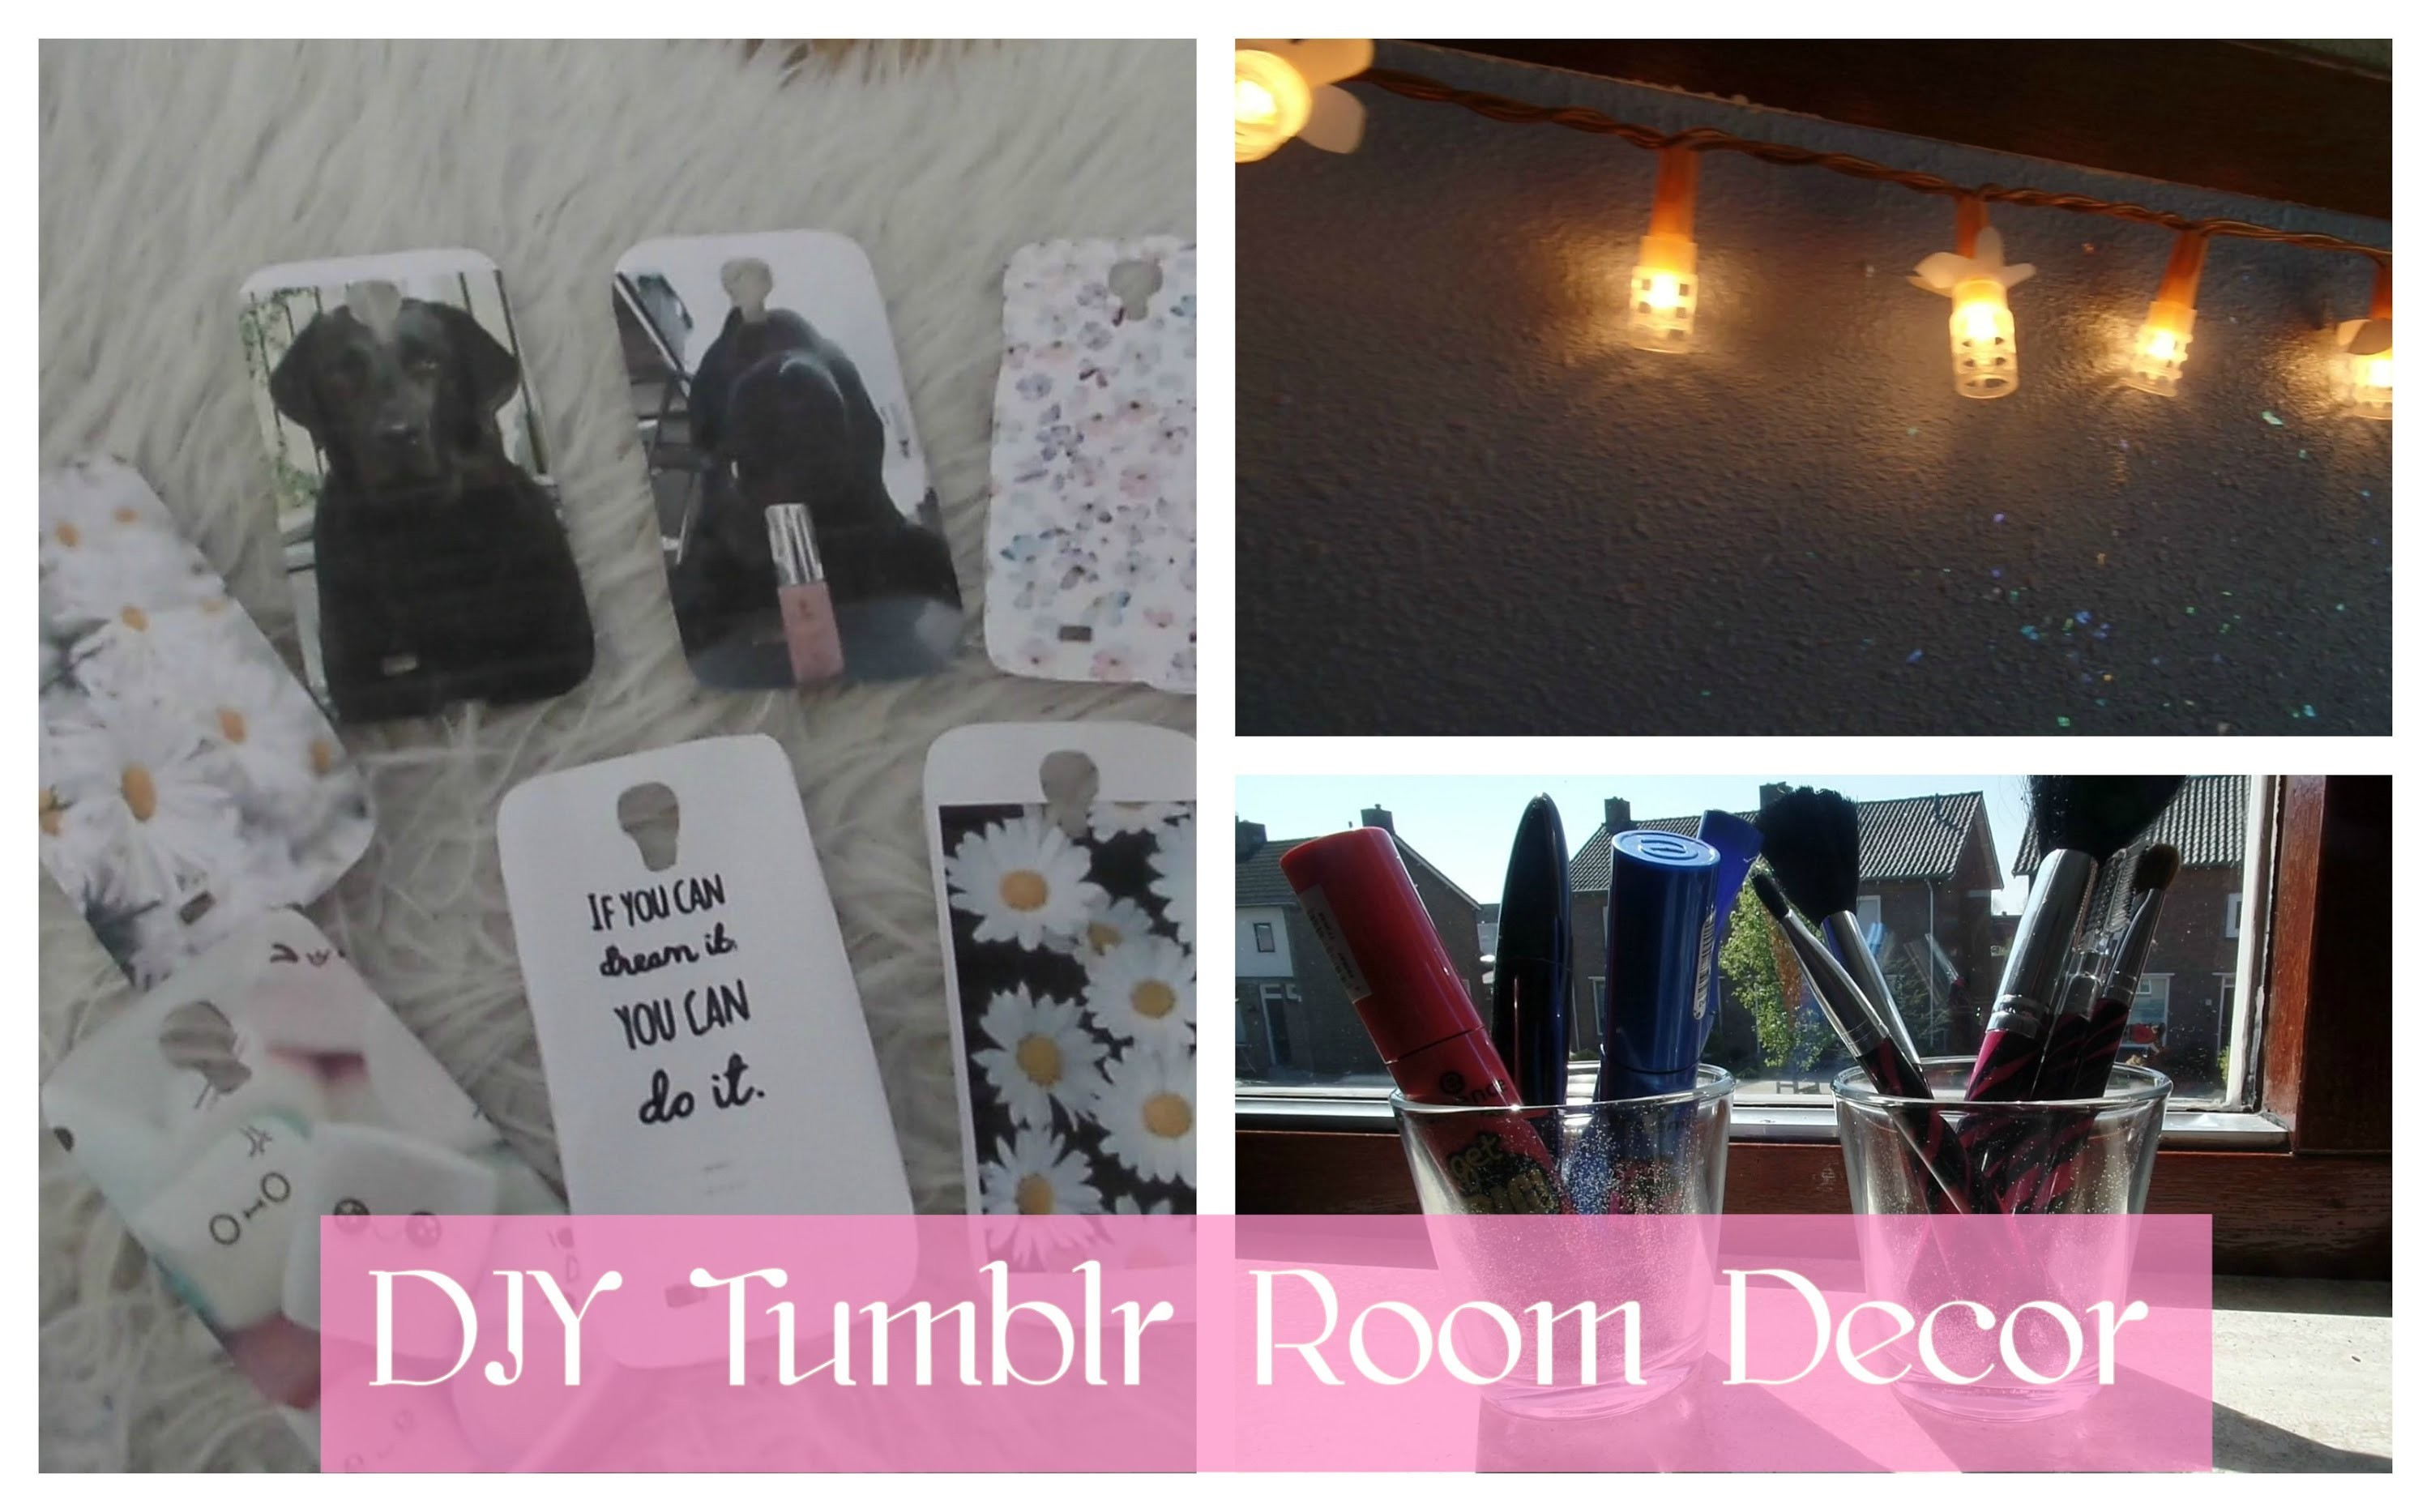 DIY Tumblr Room Decor - collab, DIY Inspiration